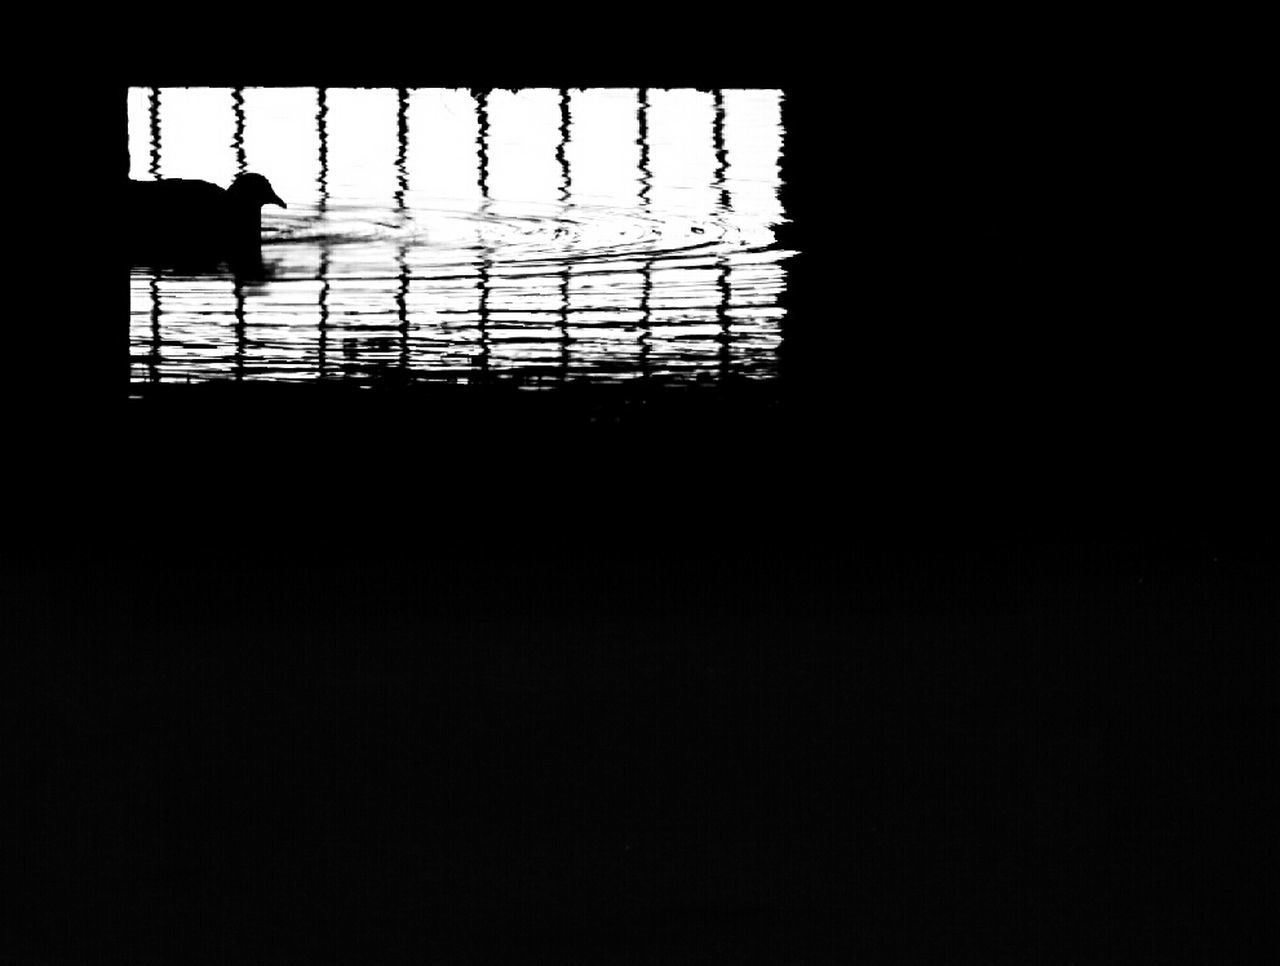 Waterbird Water Water Reflections Silhouette Outdoors Iron Fence Iron - Metal Waves Doğa Animal Bird Birds Of EyeEm  Lake Bridge Darkness And Light Dark Photography Germany Natur Silhouette Refelections Nature GERMANY🇩🇪DEUTSCHERLAND@ Photography Hello World Check This Out